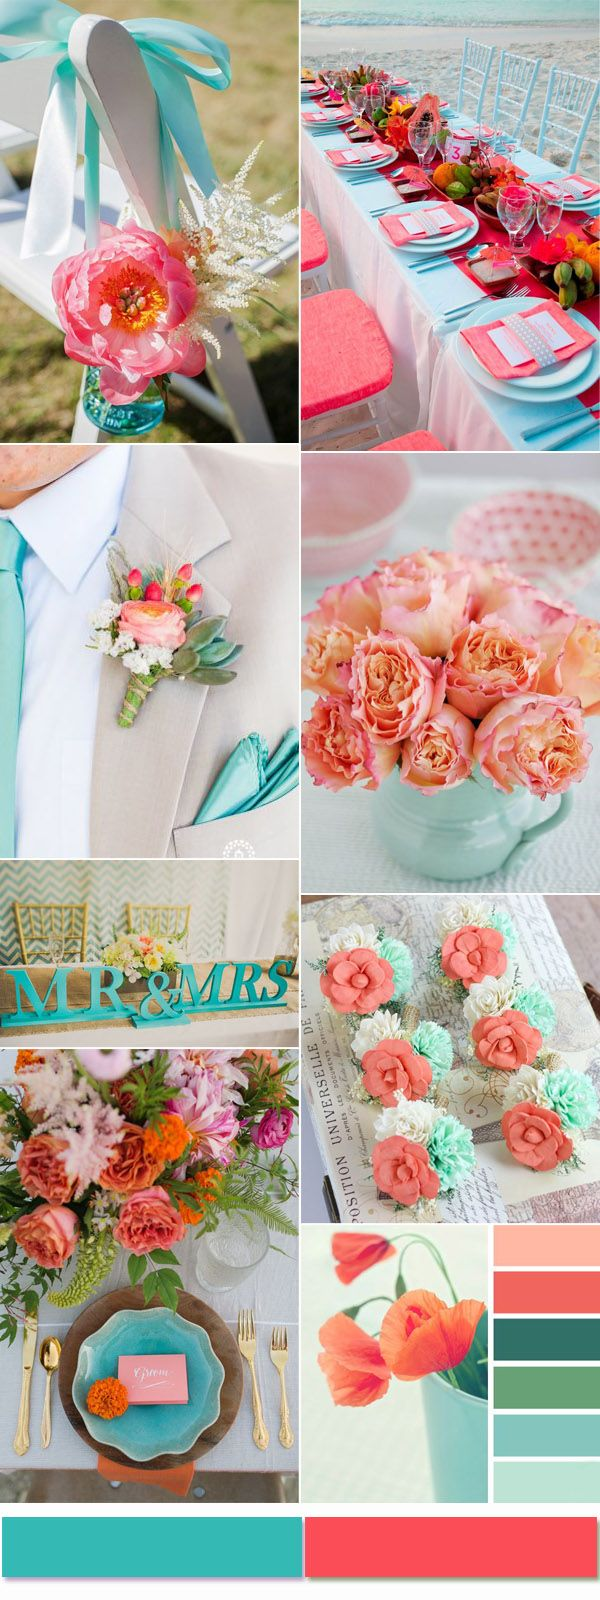 Ideas of wedding decorations   best My possible wedding ideas  images on Pinterest